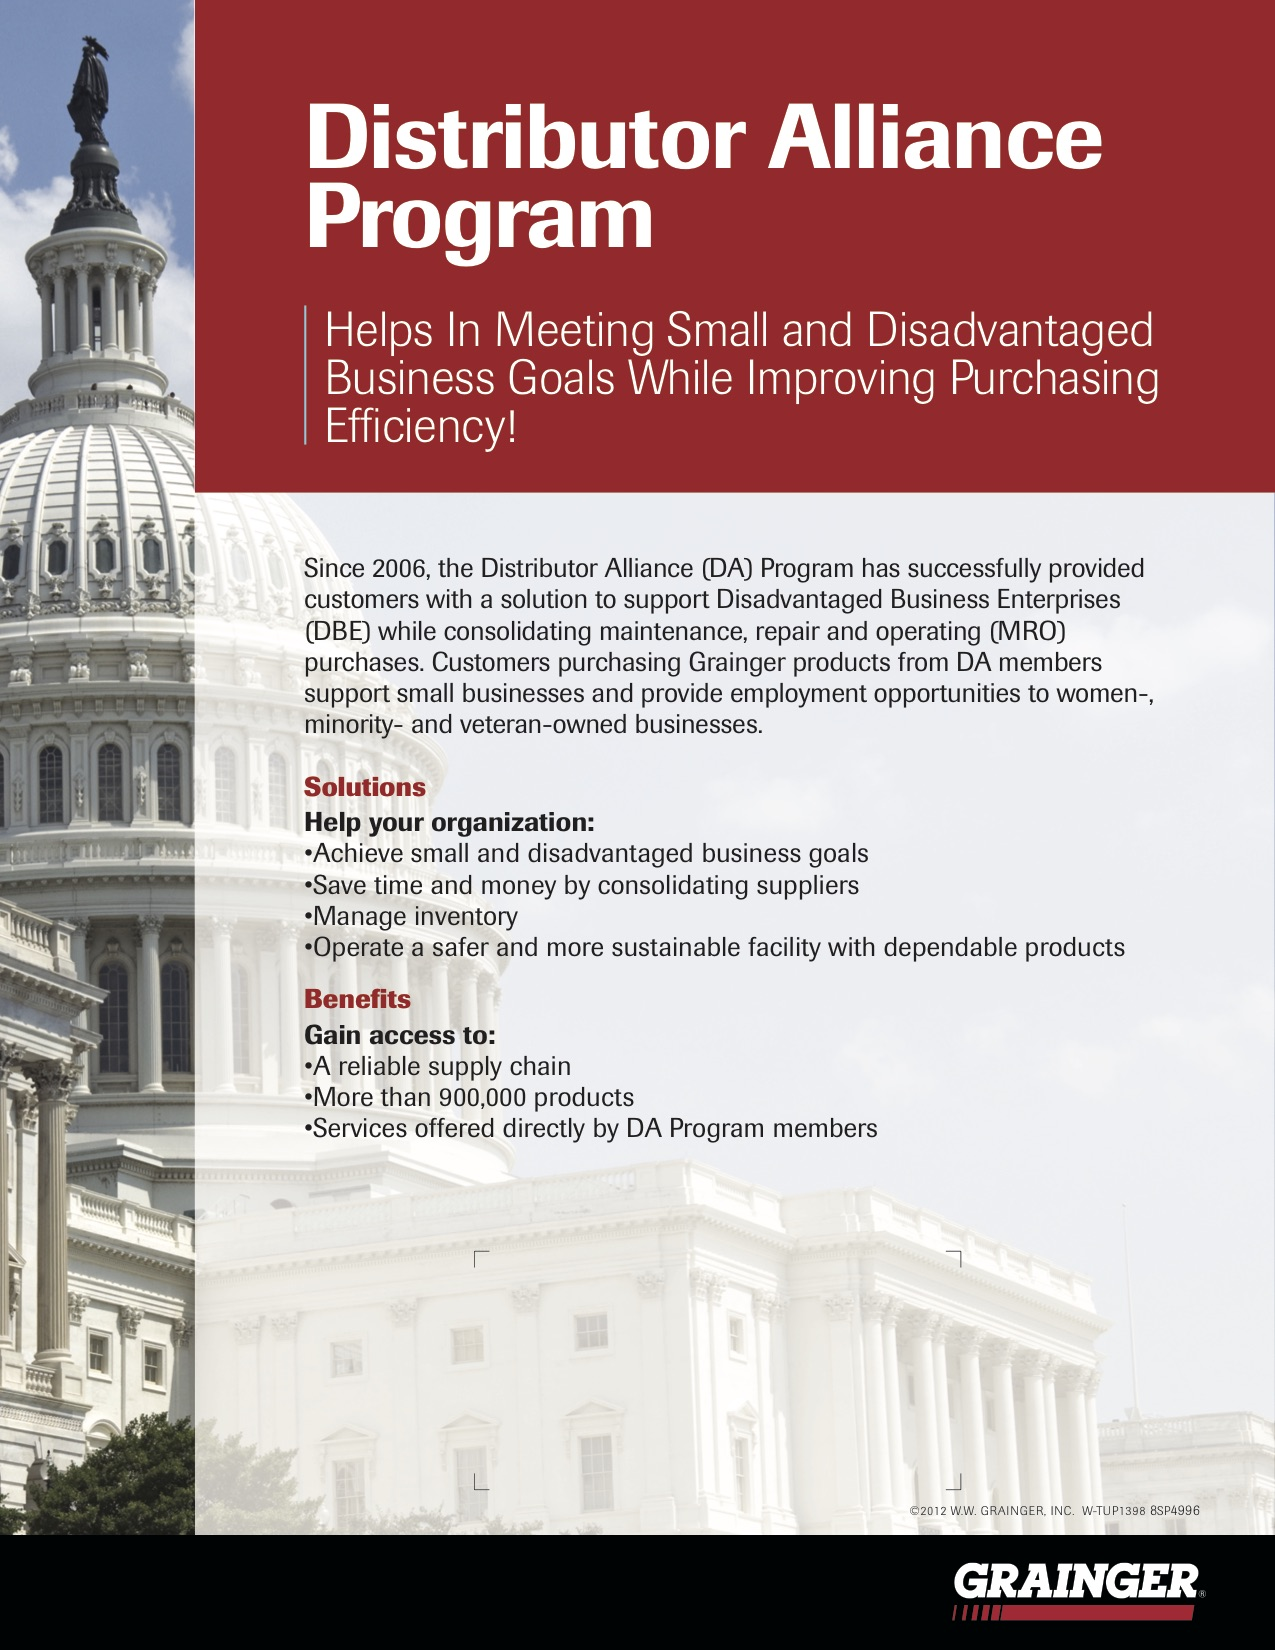 Grainger Distributor Alliance Program